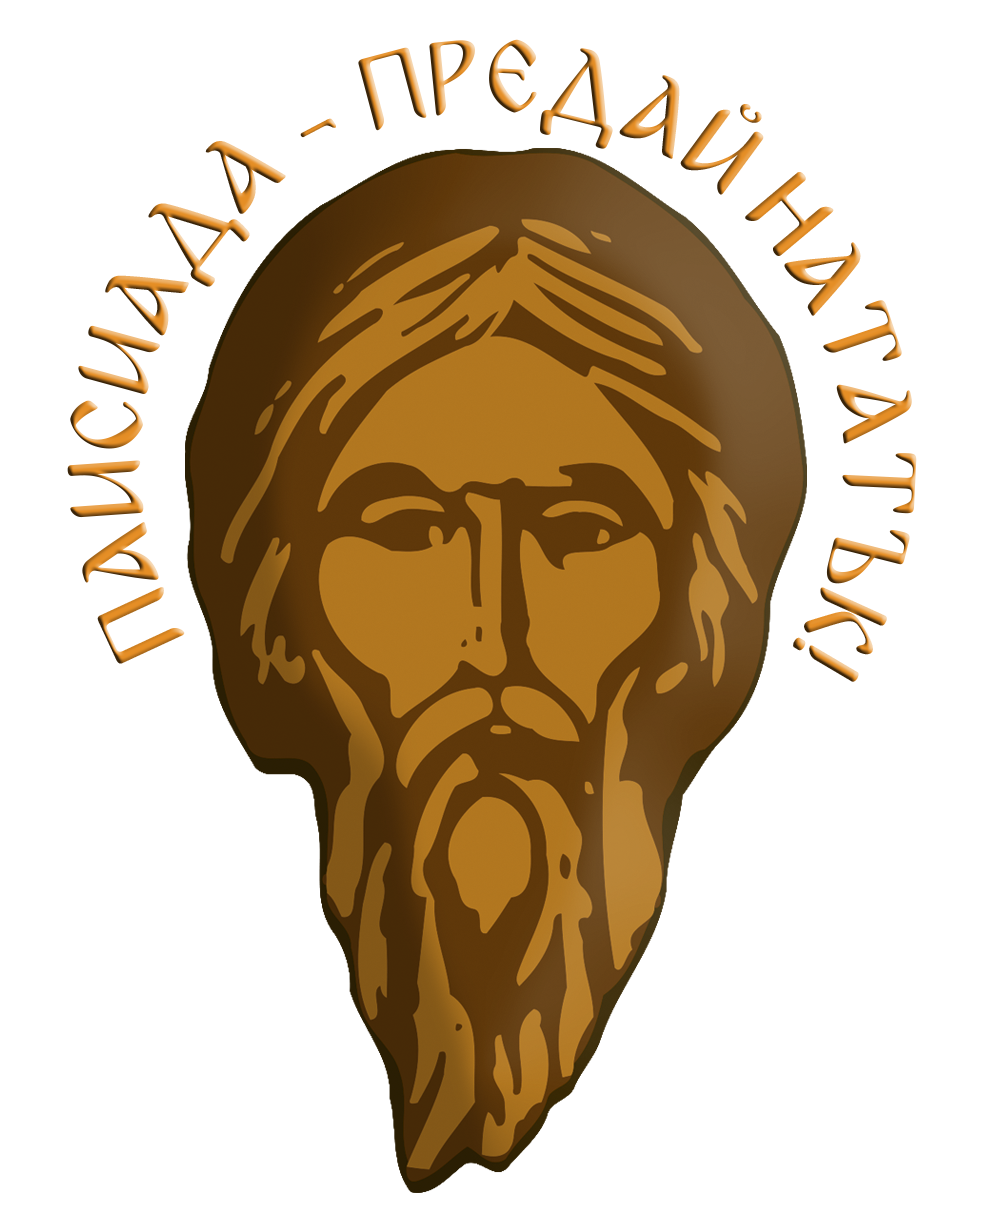 http://paissiada.com/fr/p-tuvasa-lektoria;jsessionid=D3F8C4487B20D37CBB9A3C8F93F48D82?p_auth=dCvo4qFS&p_p_auth=BnlZ9RZ5&p_p_id=49&p_p_lifecycle=1&p_p_state=normal&p_p_mode=view&_49_struts_action=%2Fmy_sites%2Fview&_49_groupId=466368&_49_privateLayout=false